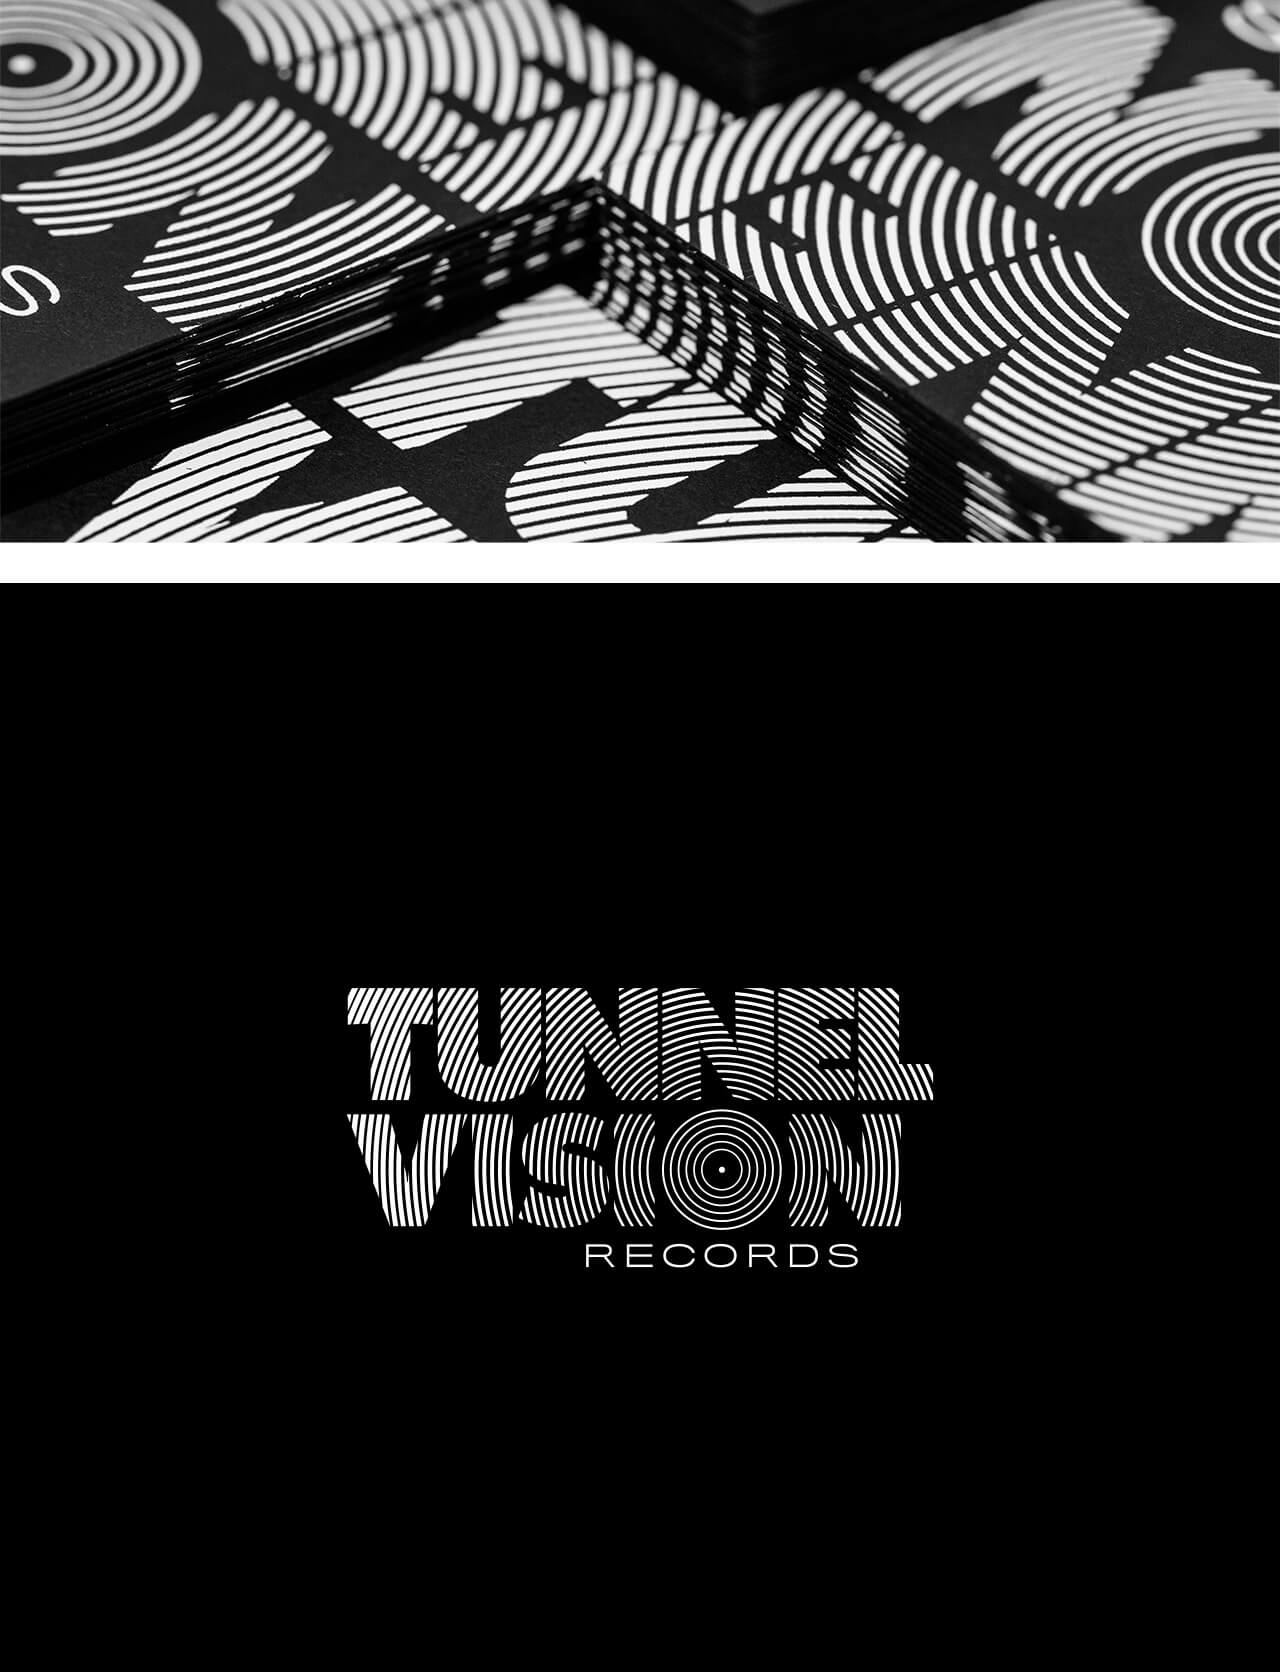 Andy Sheffield - Music - Tunnel Vision Records